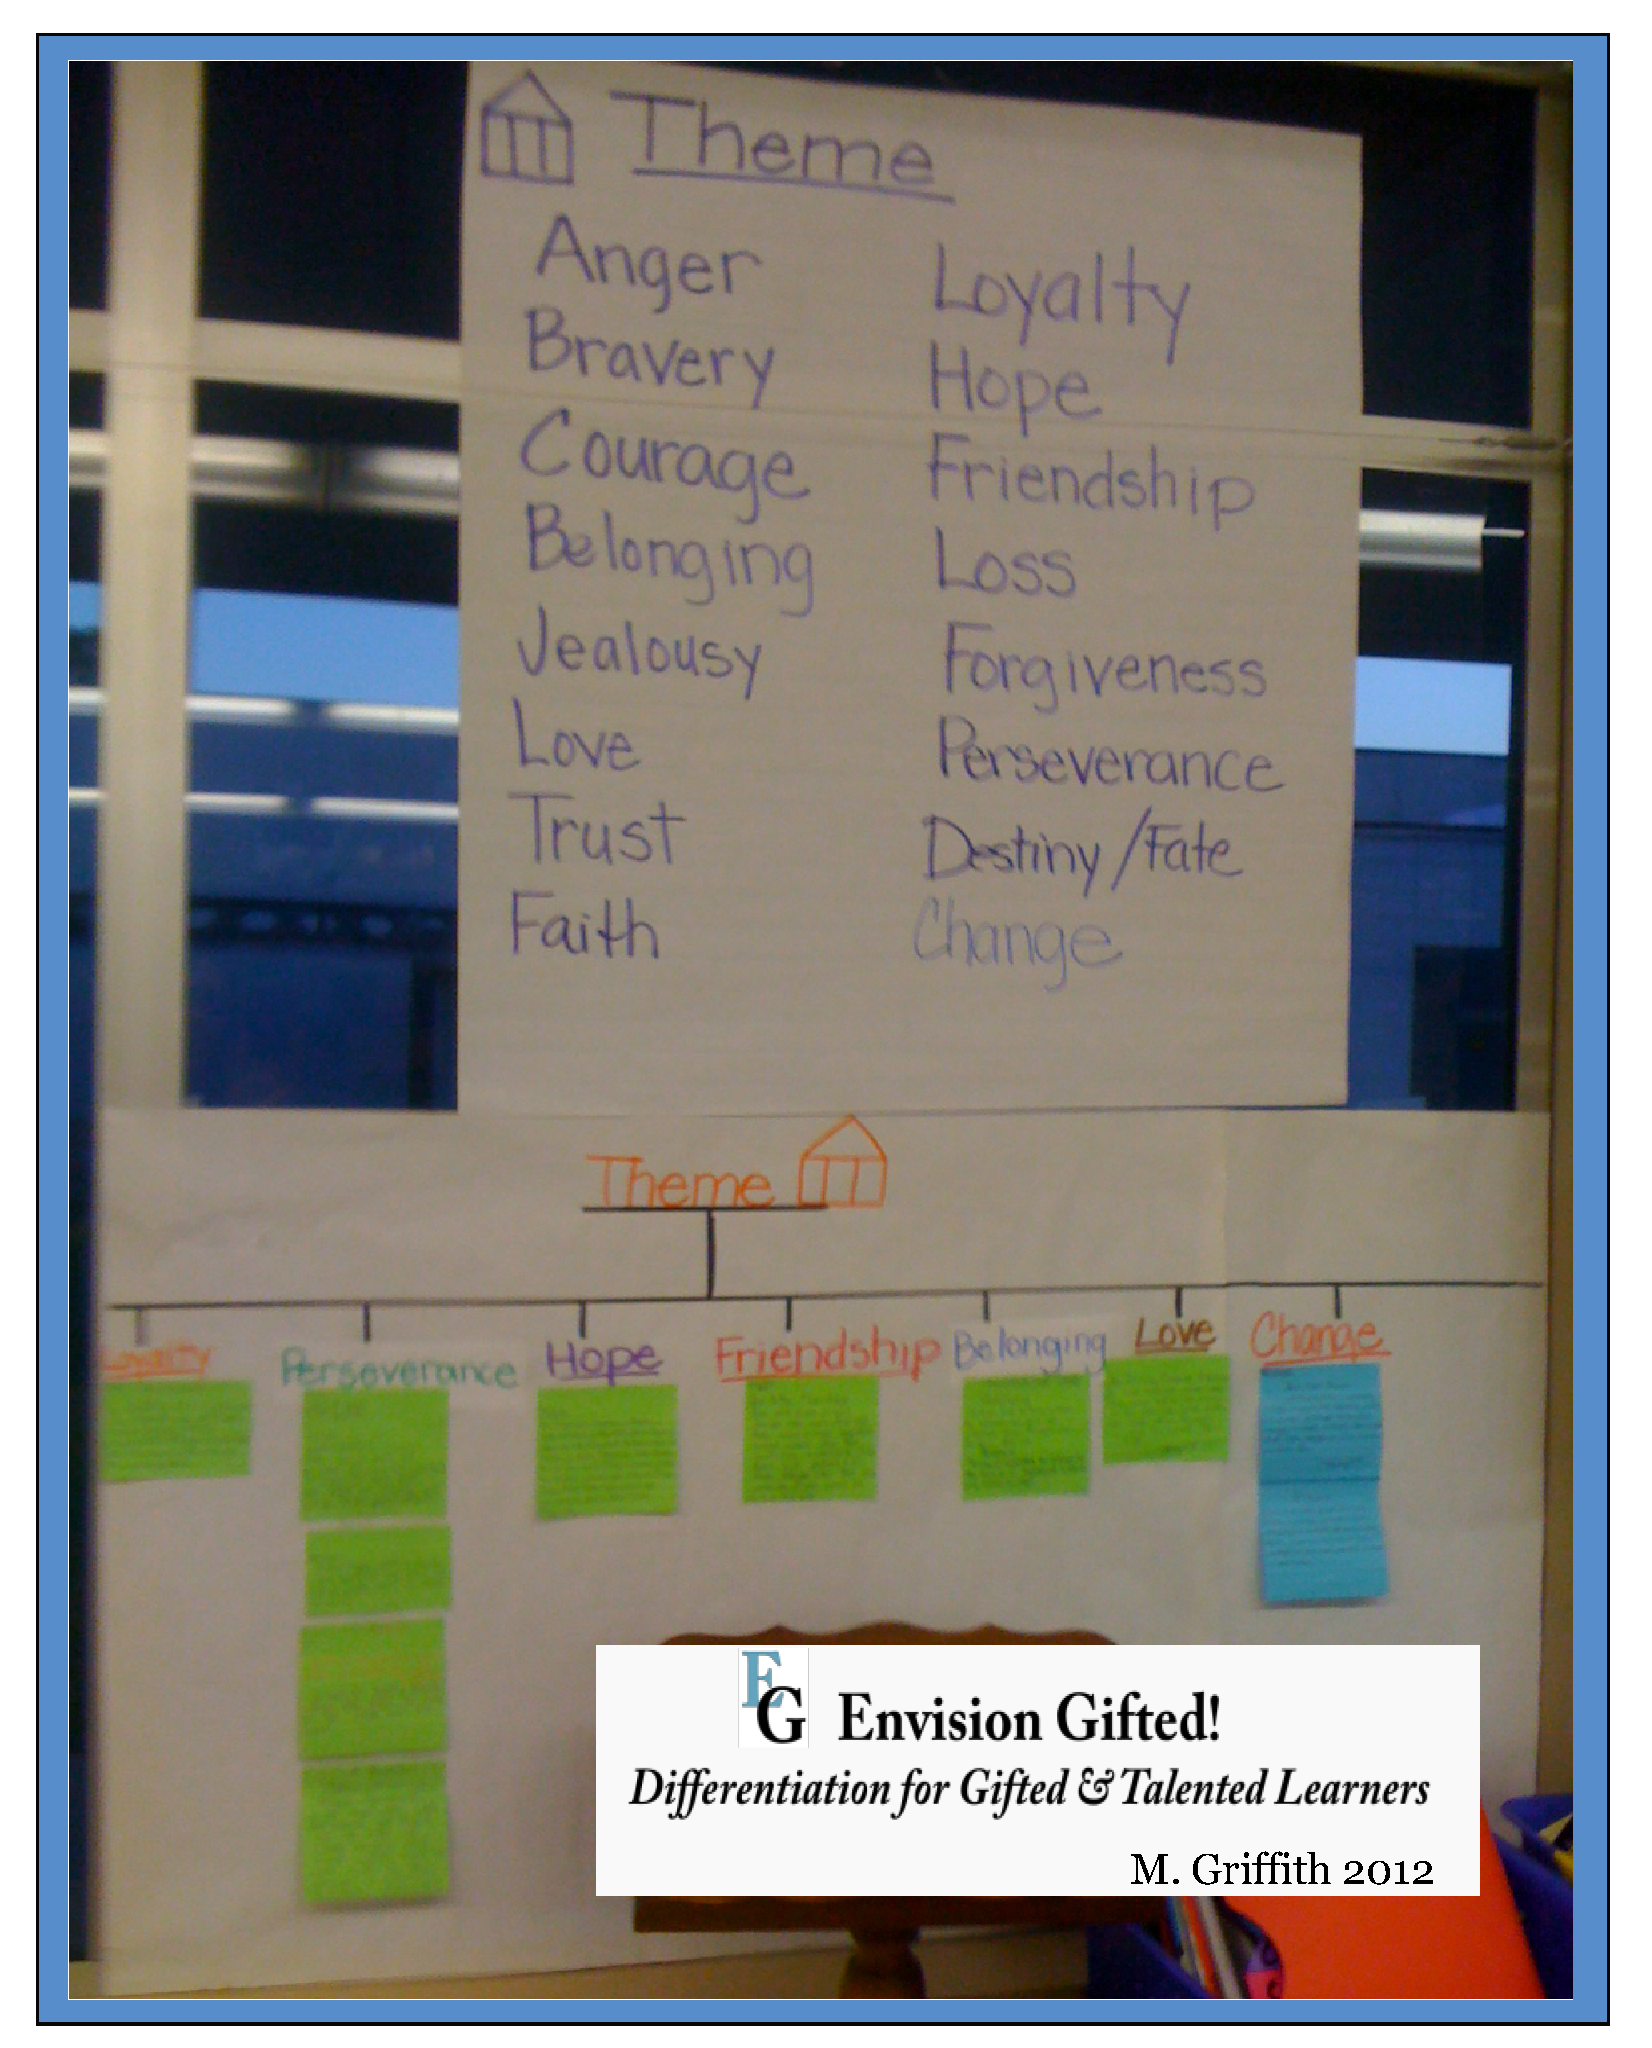 Envision Gifted. Identify Theme